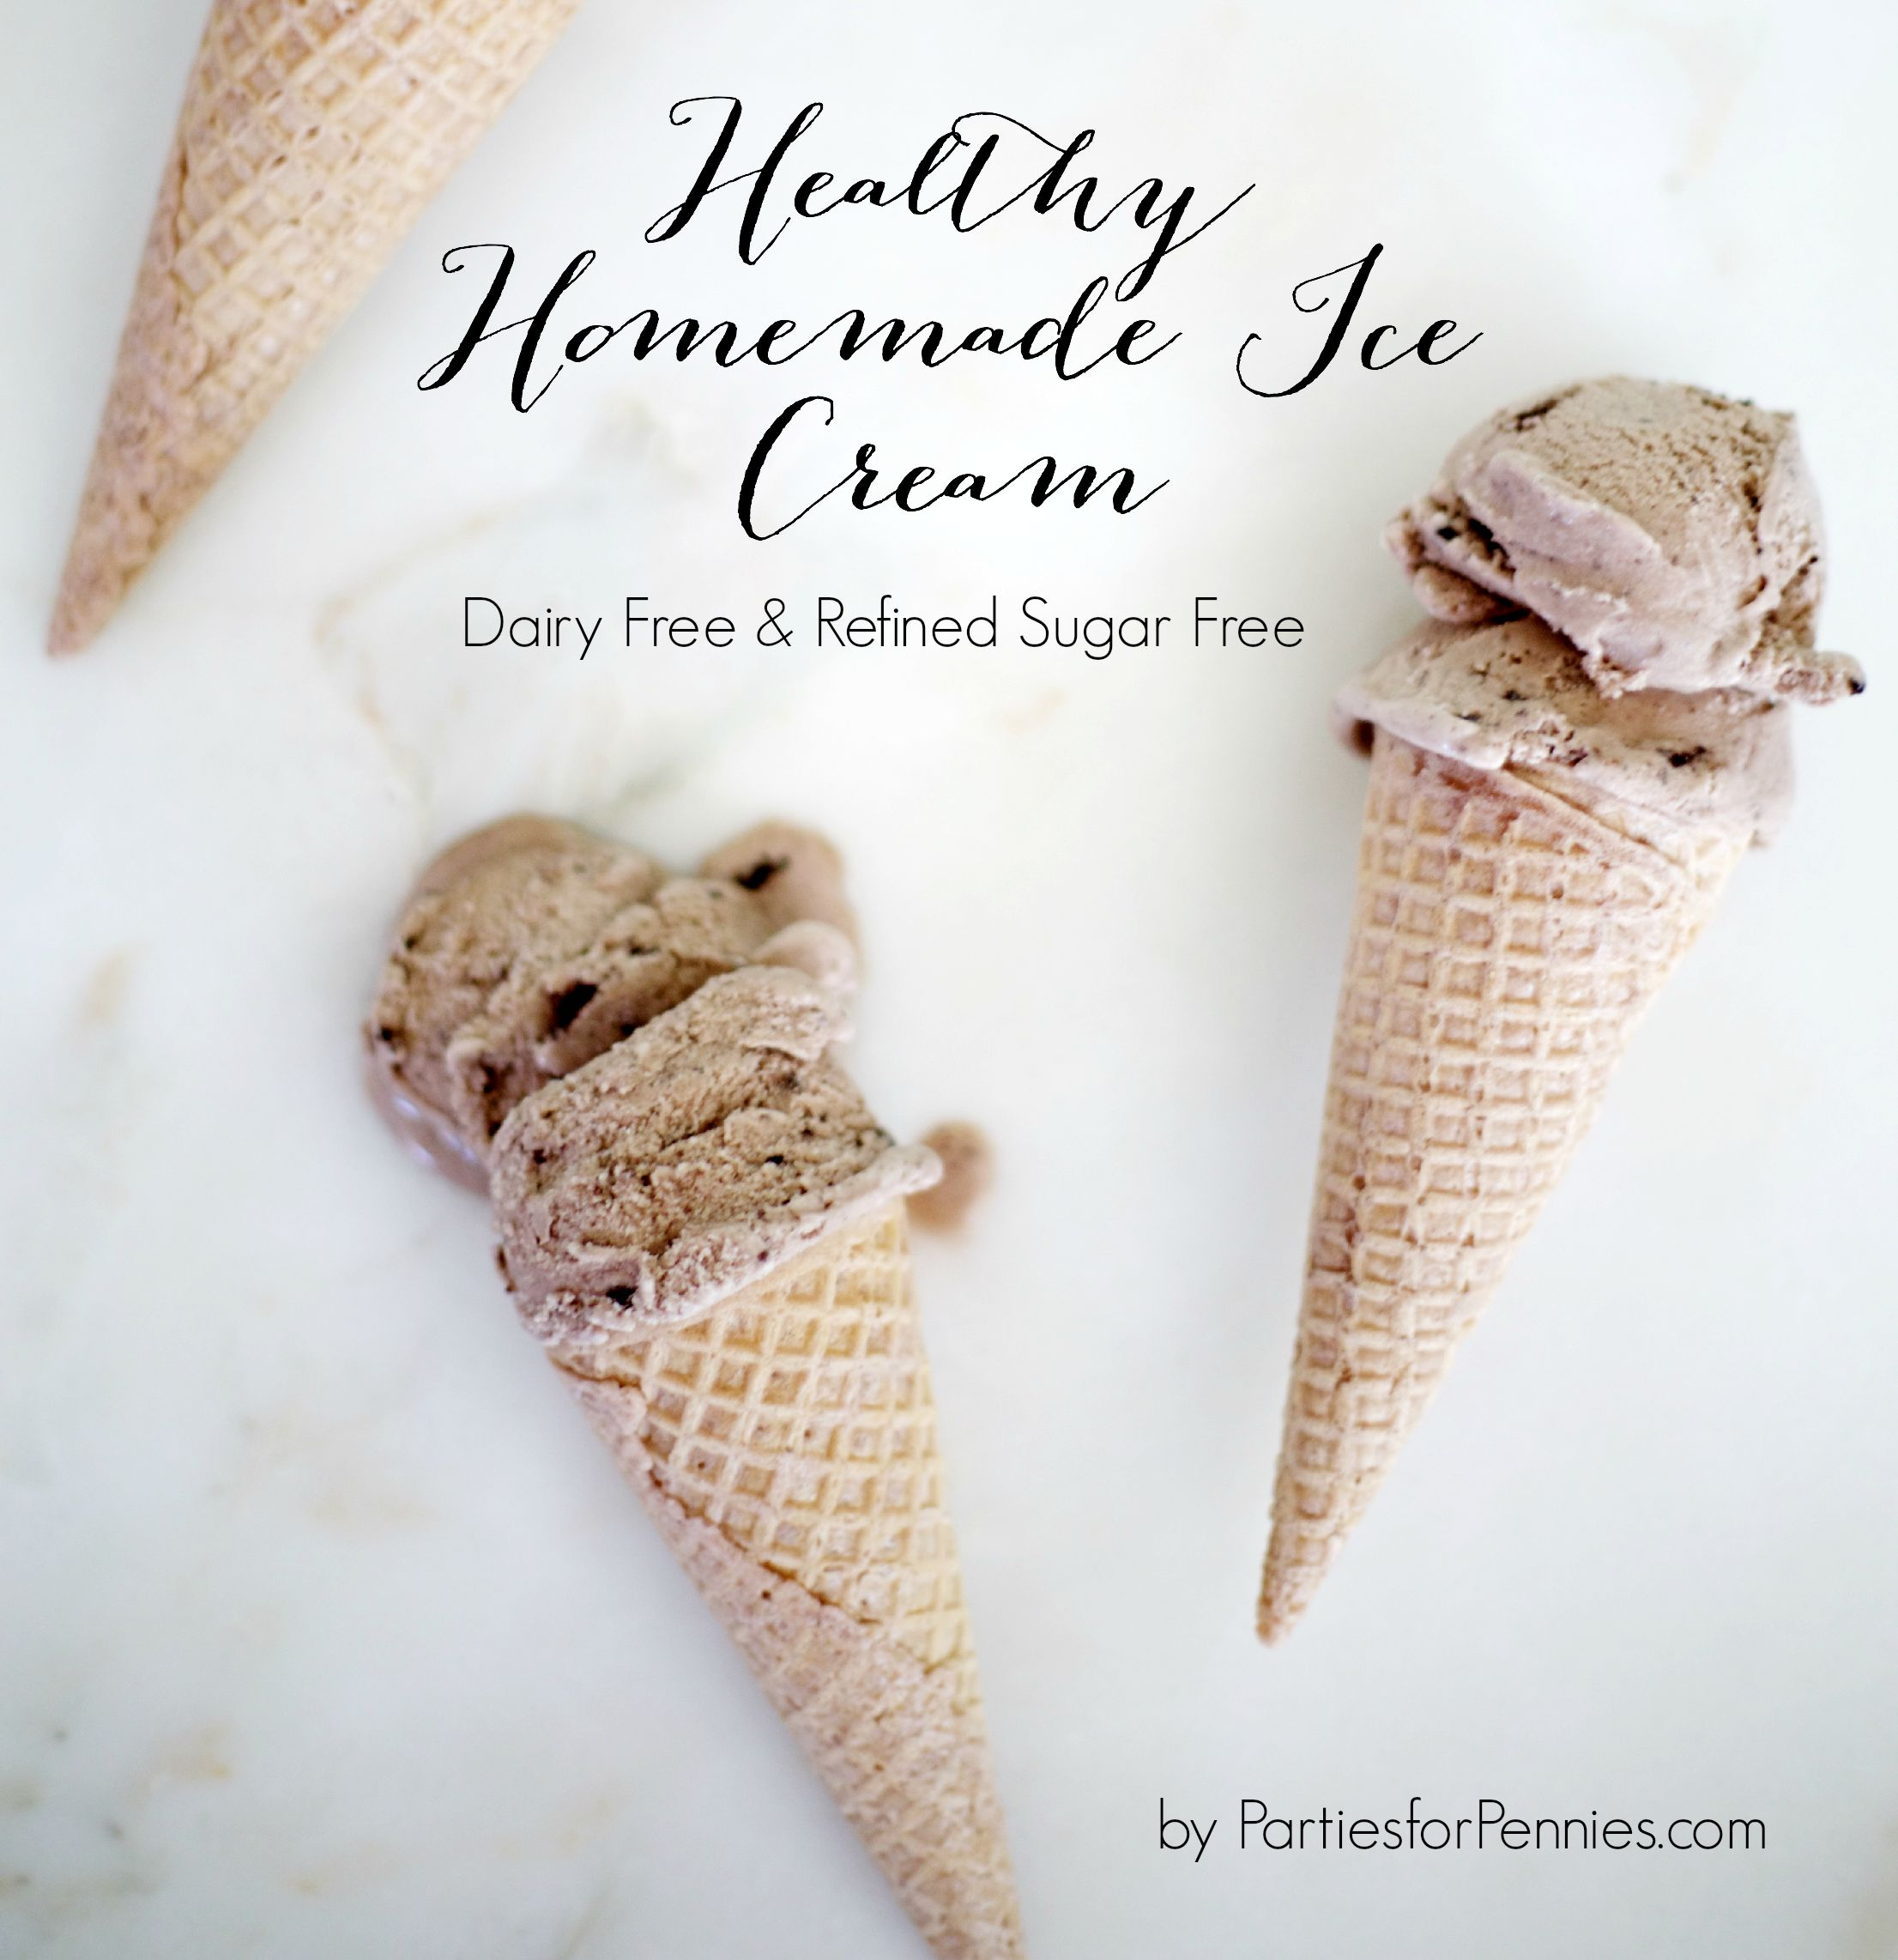 Healthy Homemade Coconut Milk Ice Cream